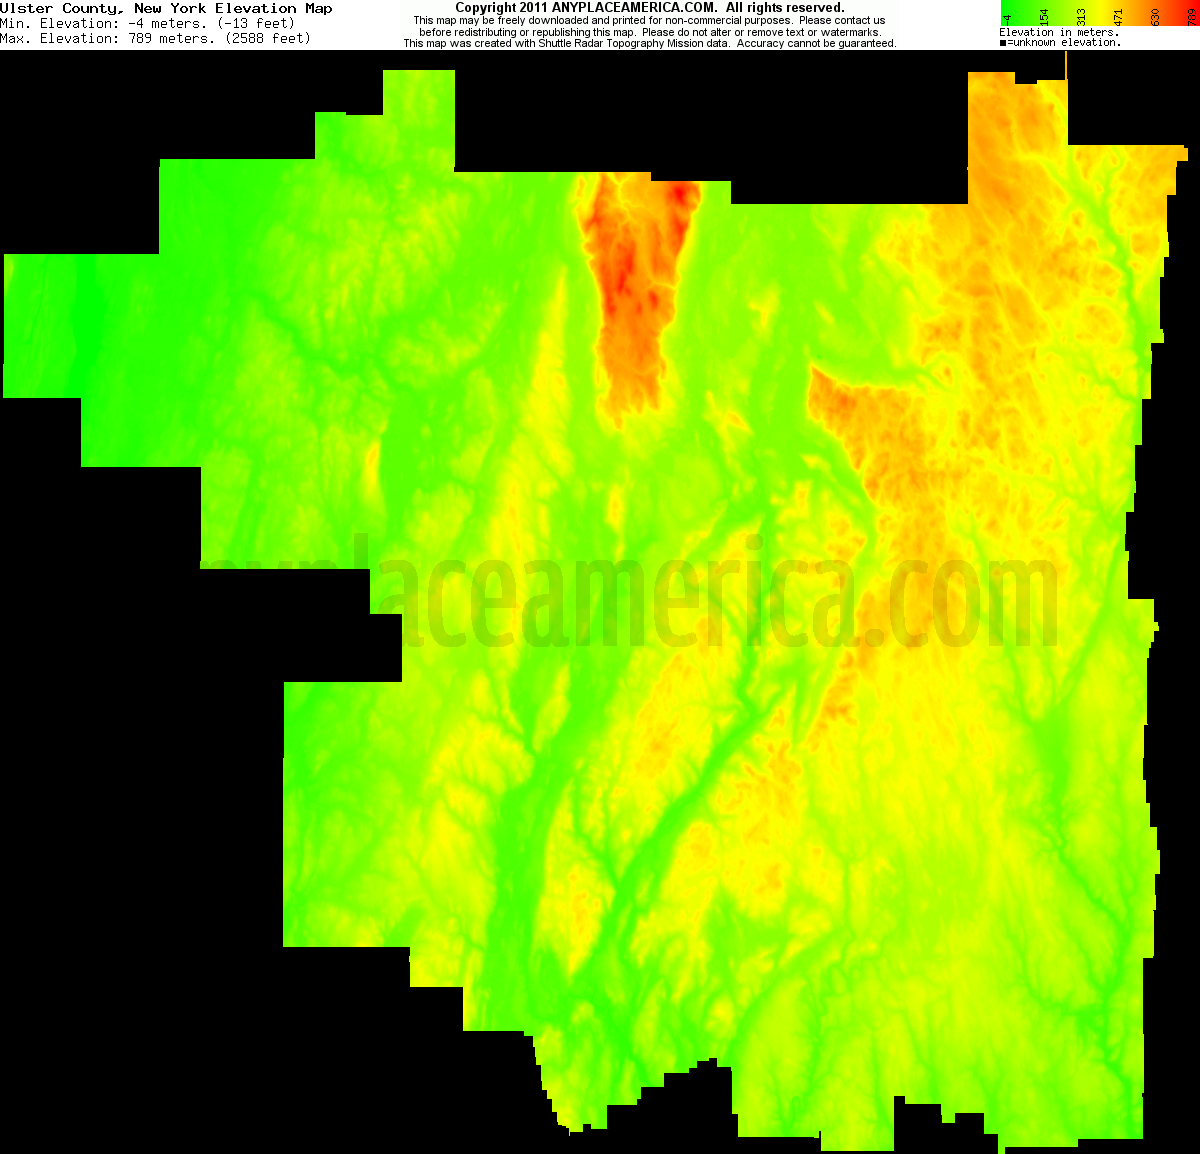 Ulster, New York elevation map